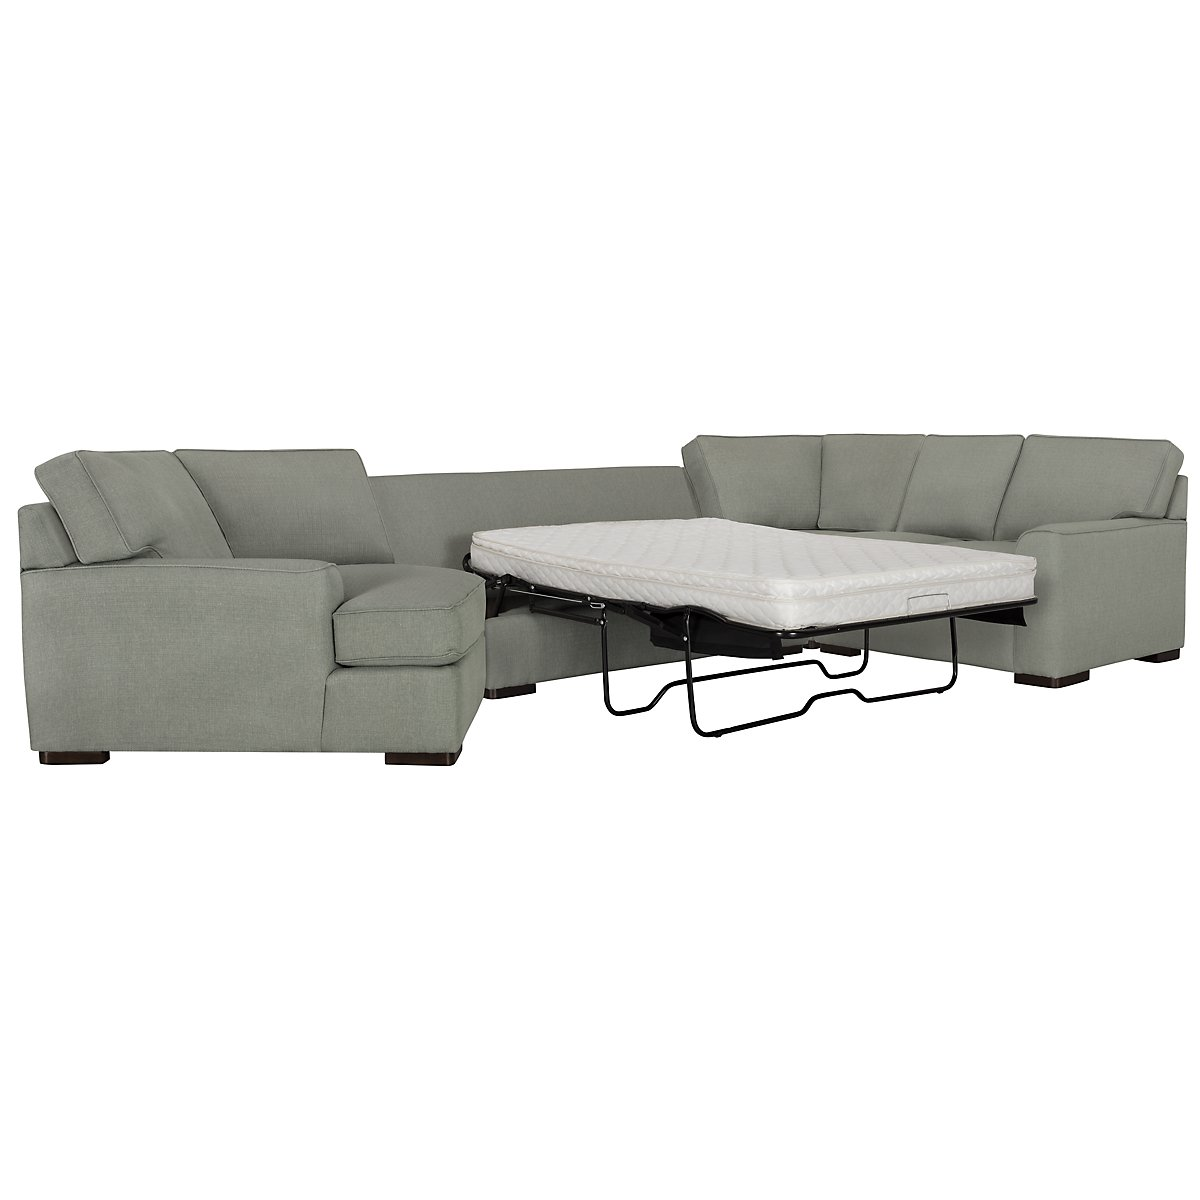 Austin Green Fabric Left Cuddler Innerspring Sleeper Sectional